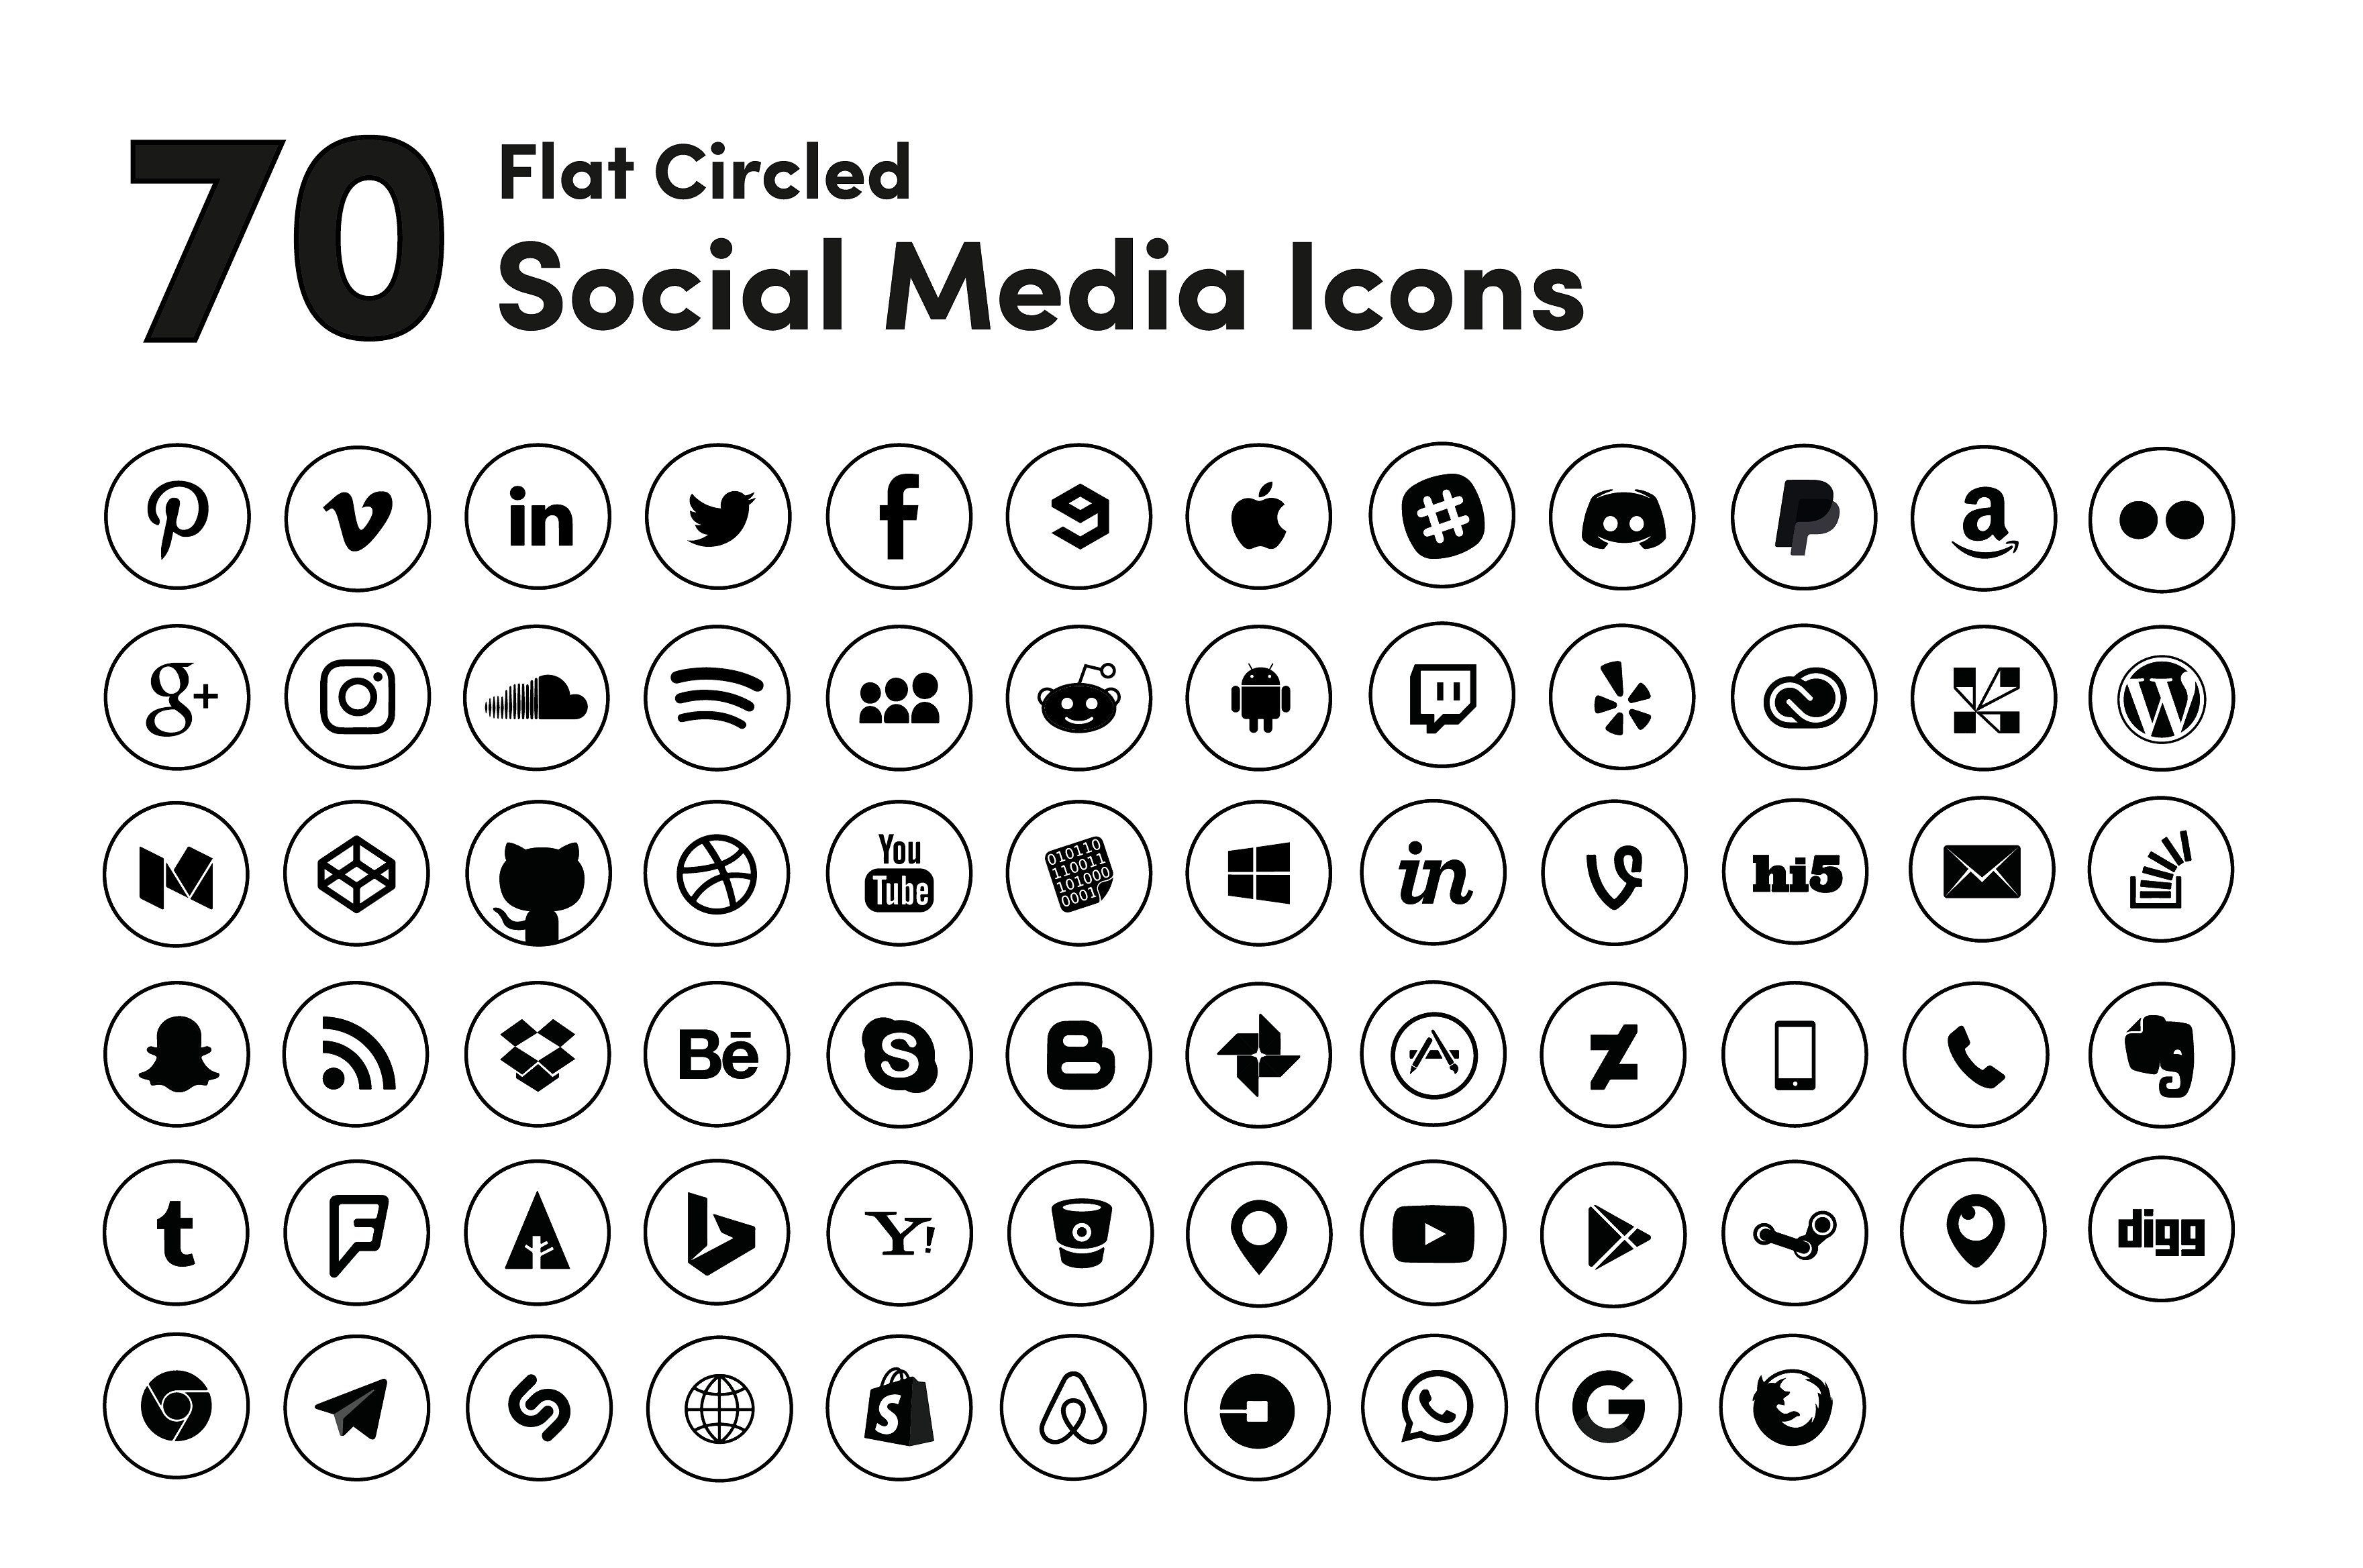 Black Circled Social Media Icons Social media icons